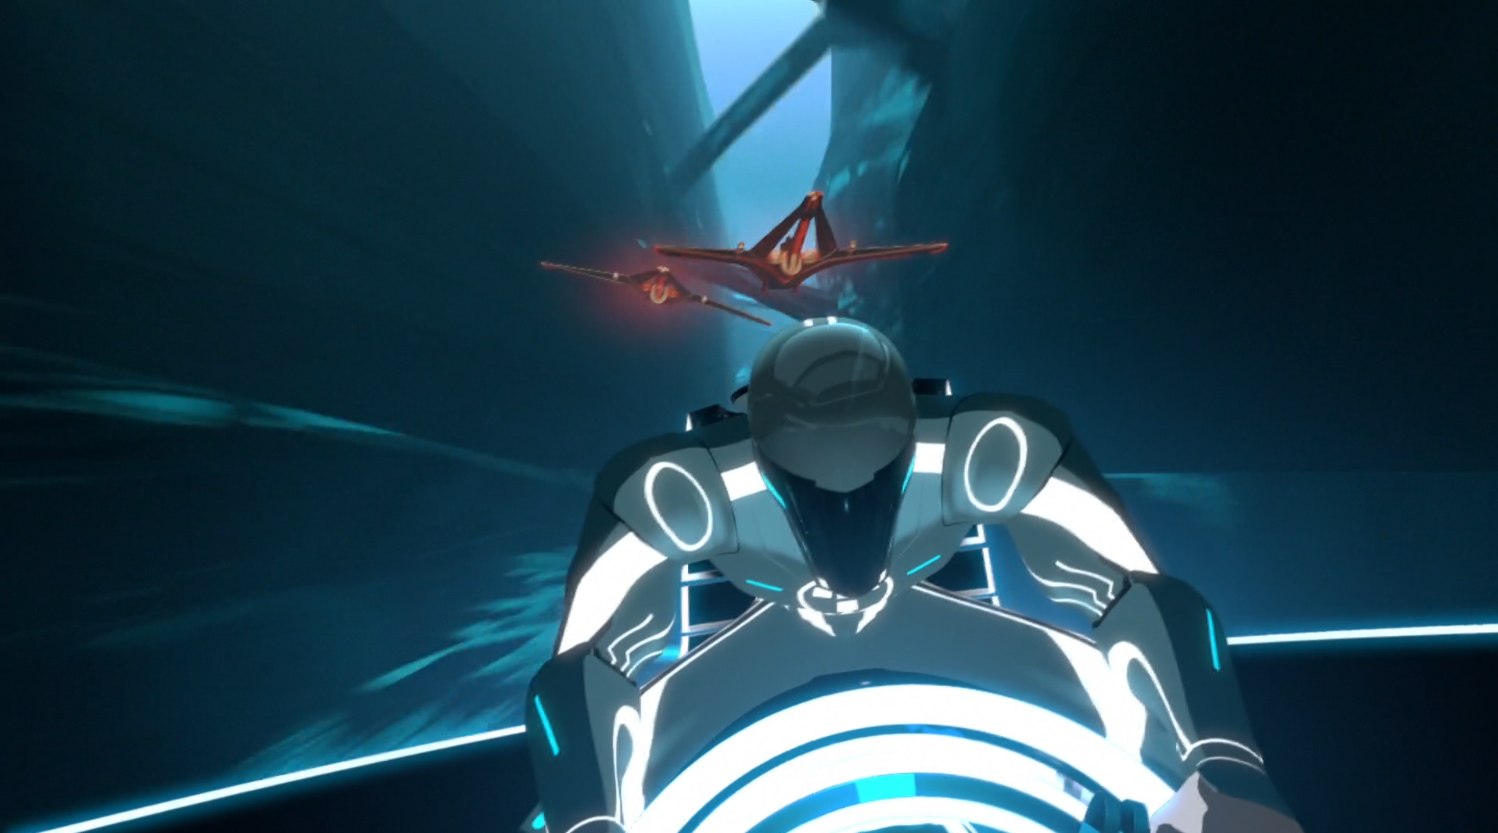 Beck as the Renegade being pursued - Terminal - Terminal - Tron: Uprising